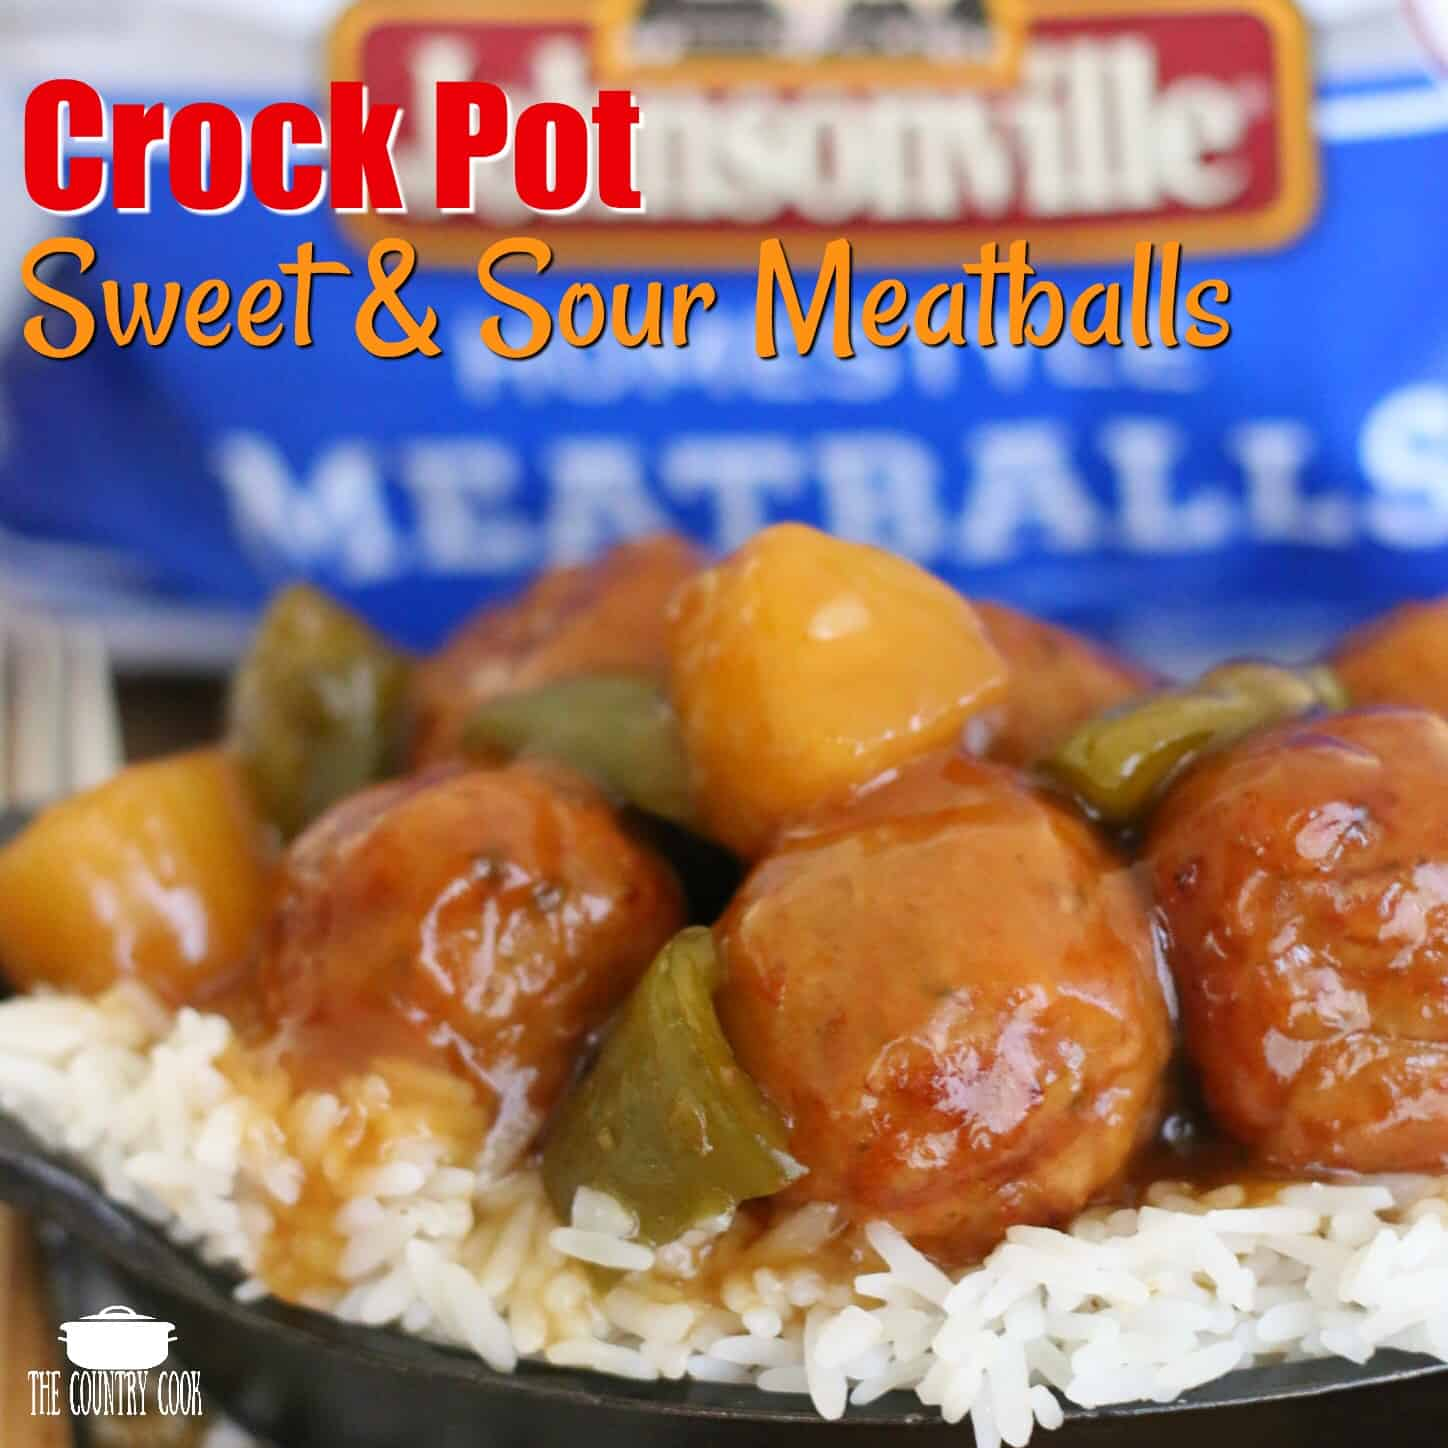 Crock Pot Sweet and Sour Meatballs recipe from The Country Cook. Meatballs shown on a bed of white rice in front of a bag of frozen meatballs.